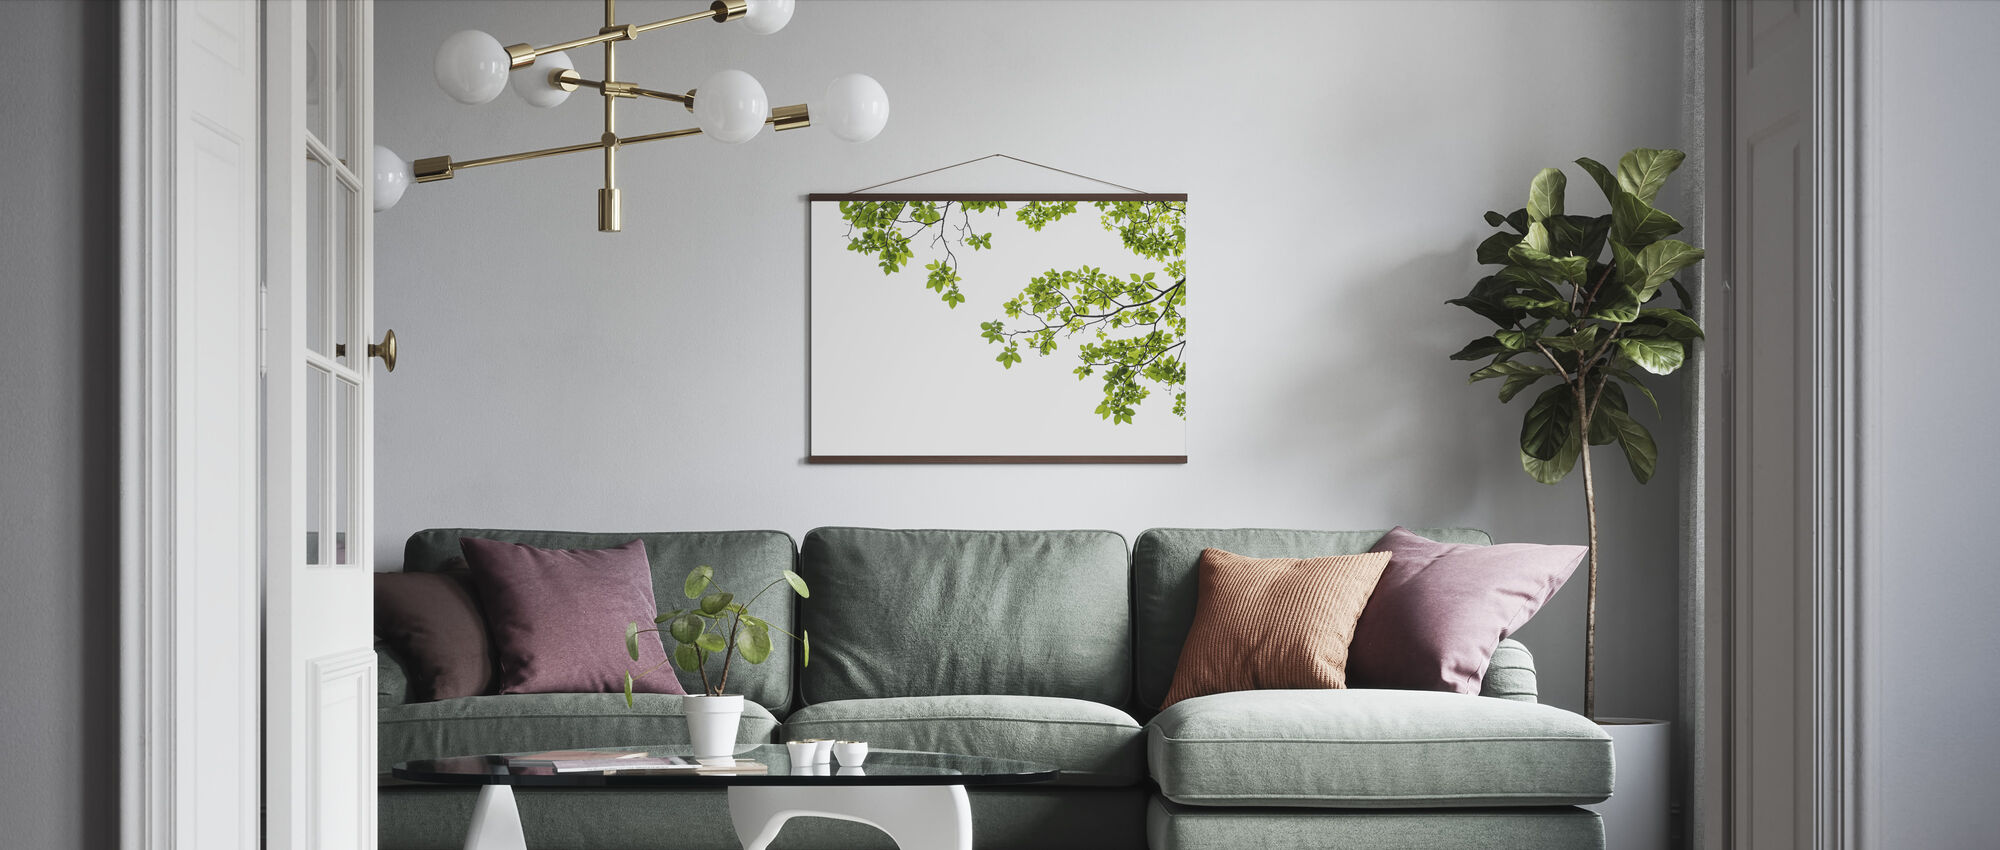 Tree Branch - Poster - Living Room